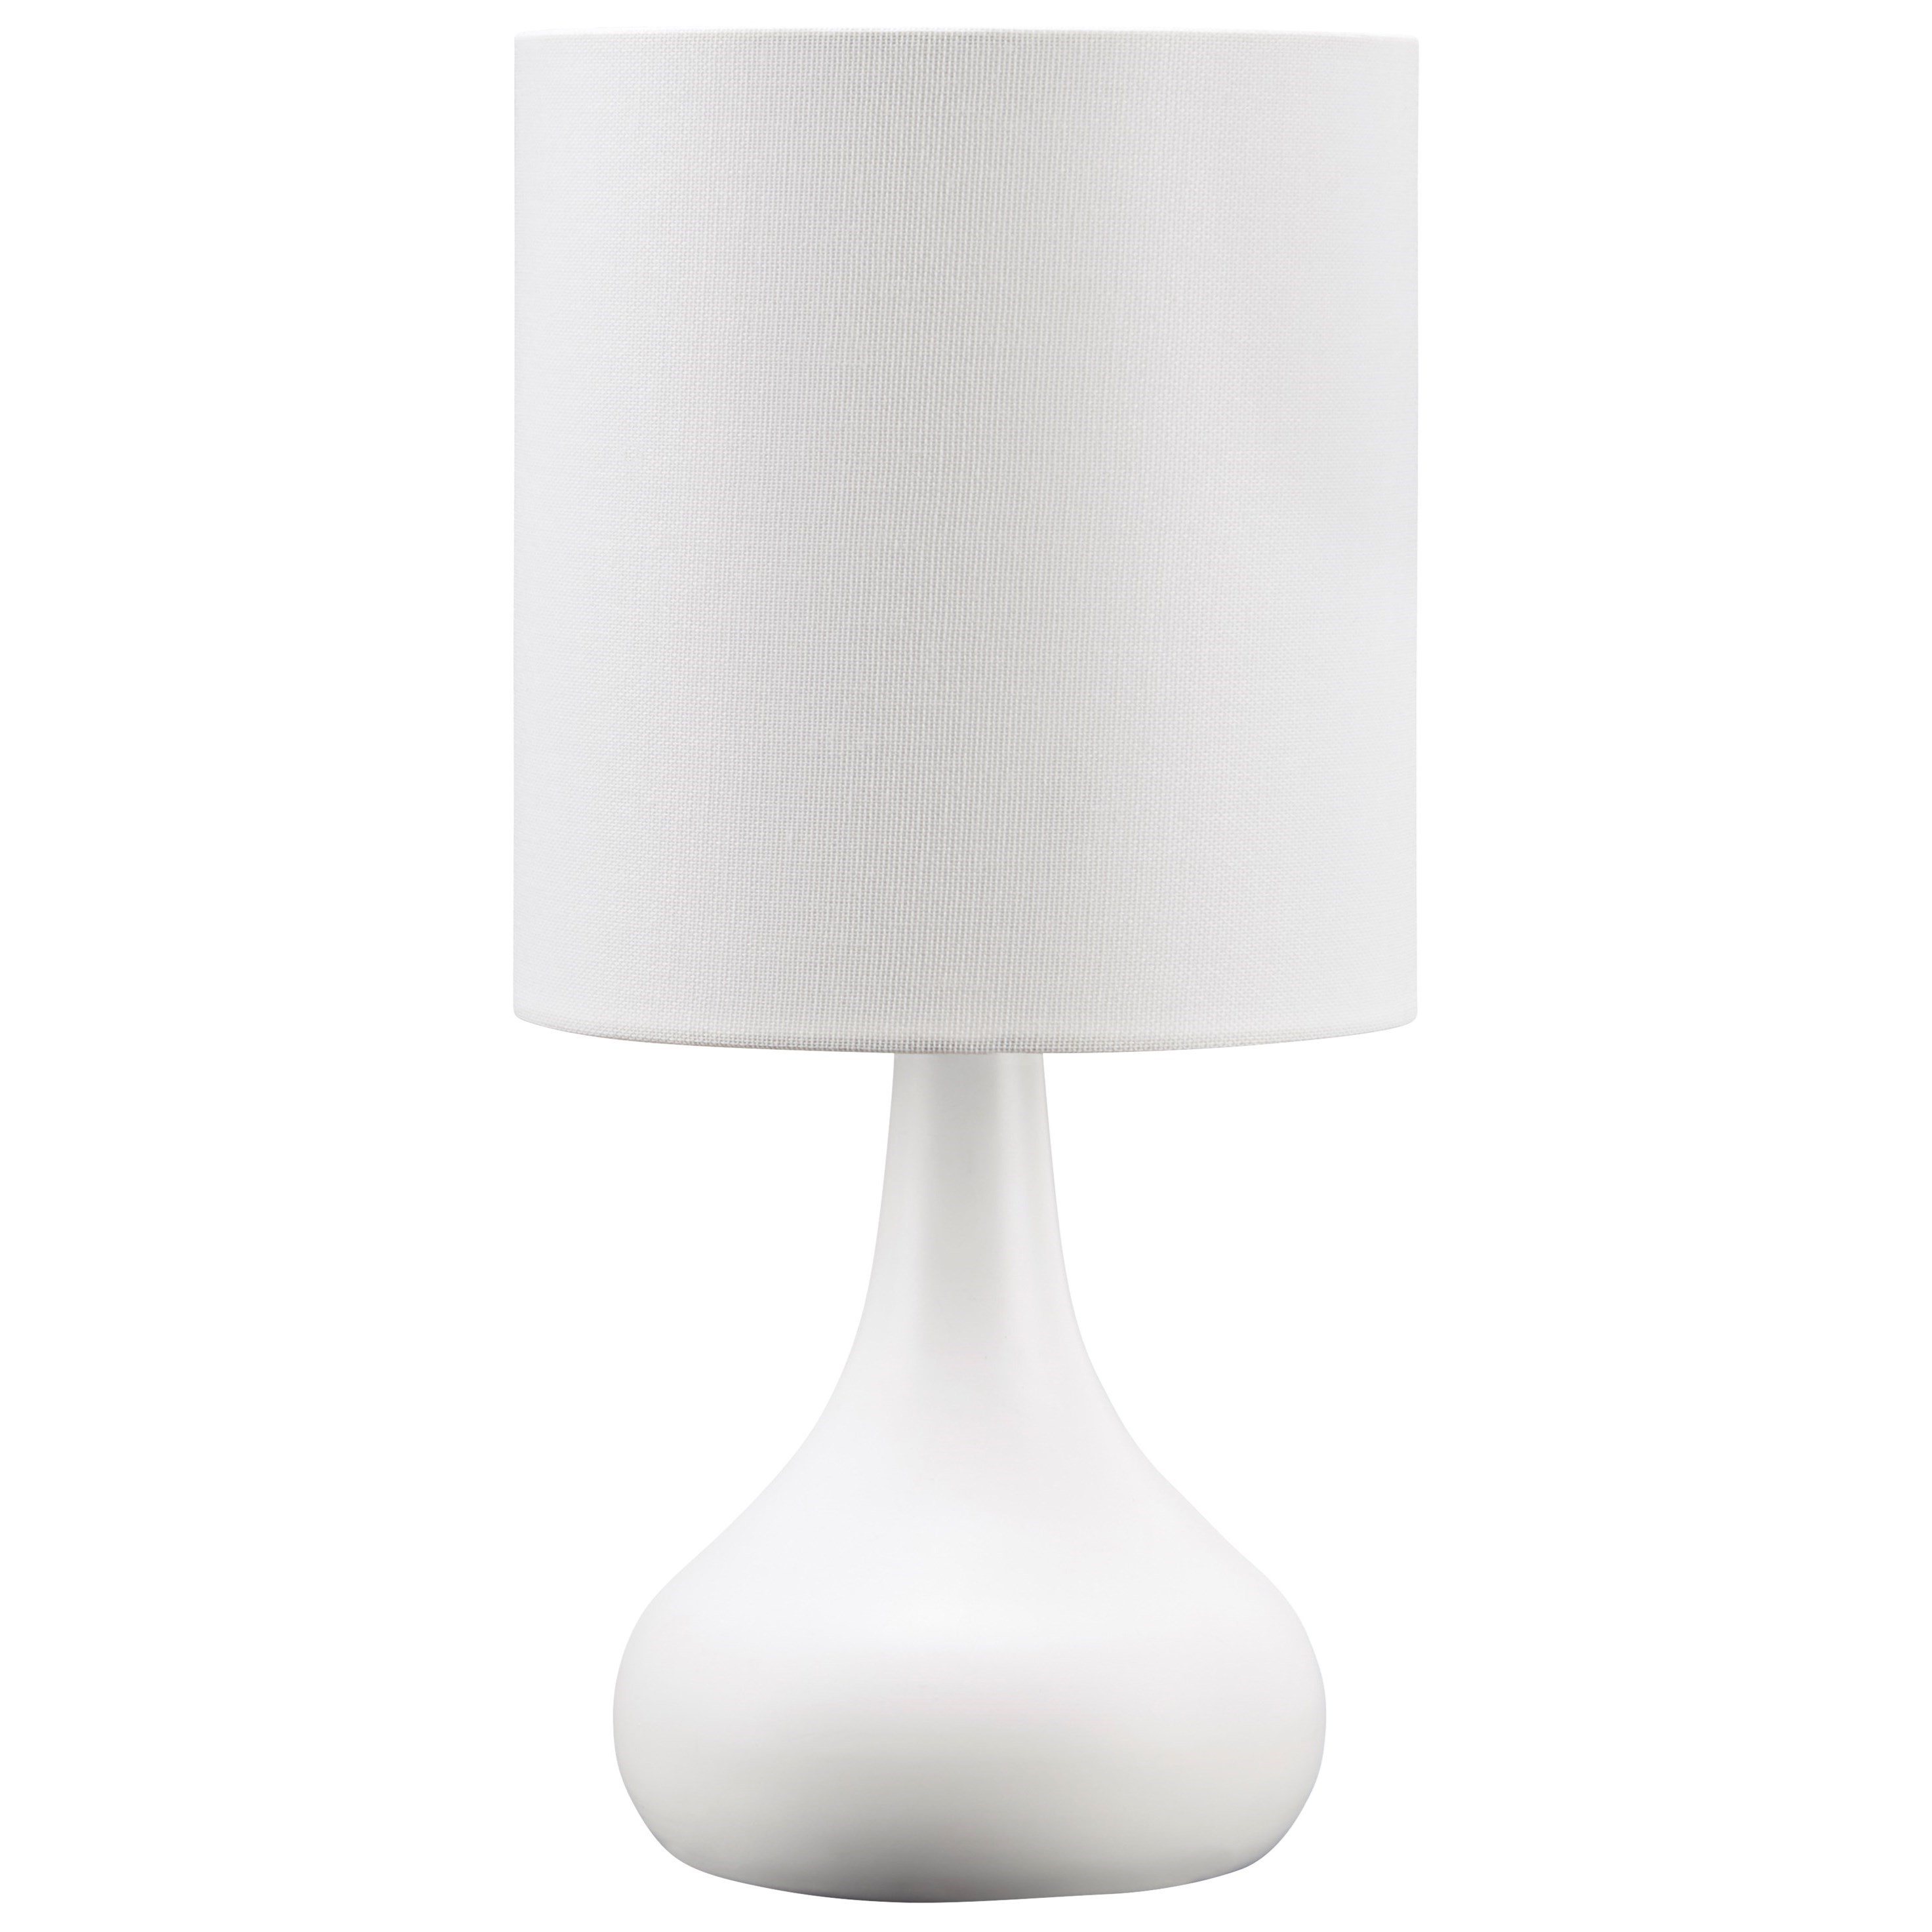 Lamps - Contemporary Camdale White Metal Table Lamp by Signature Design by Ashley at Sam Levitz Furniture